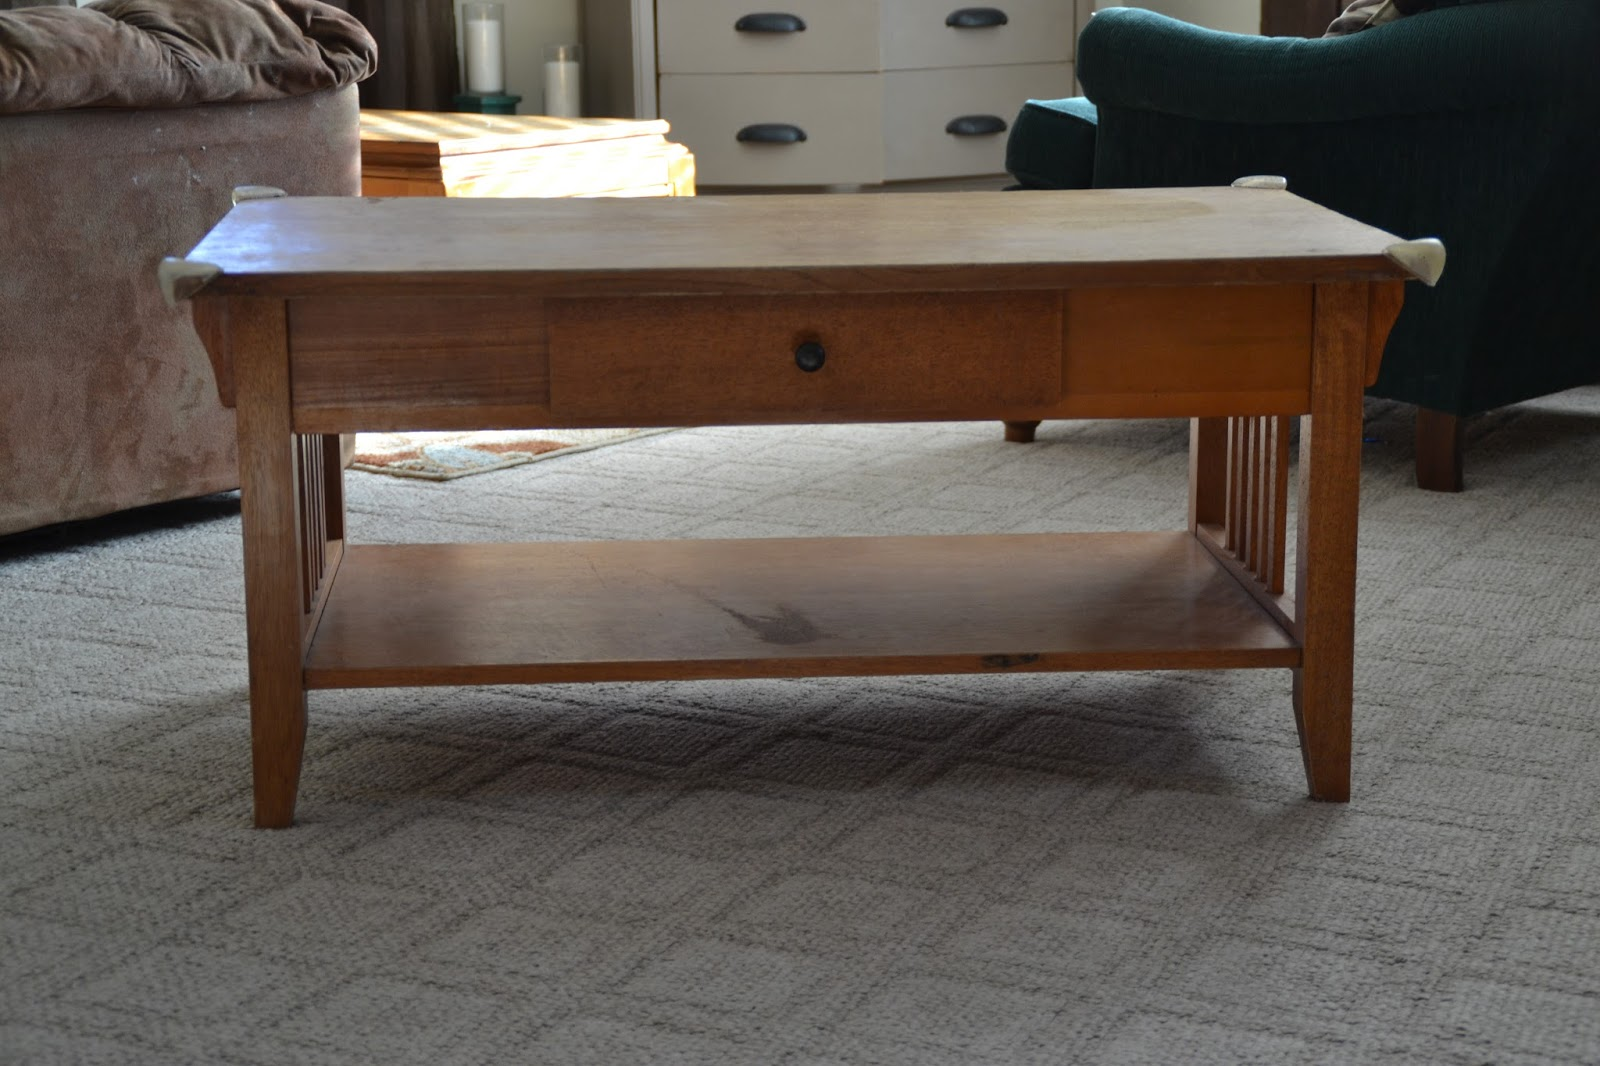 4mykiddos: transformation tuesday: coffee table